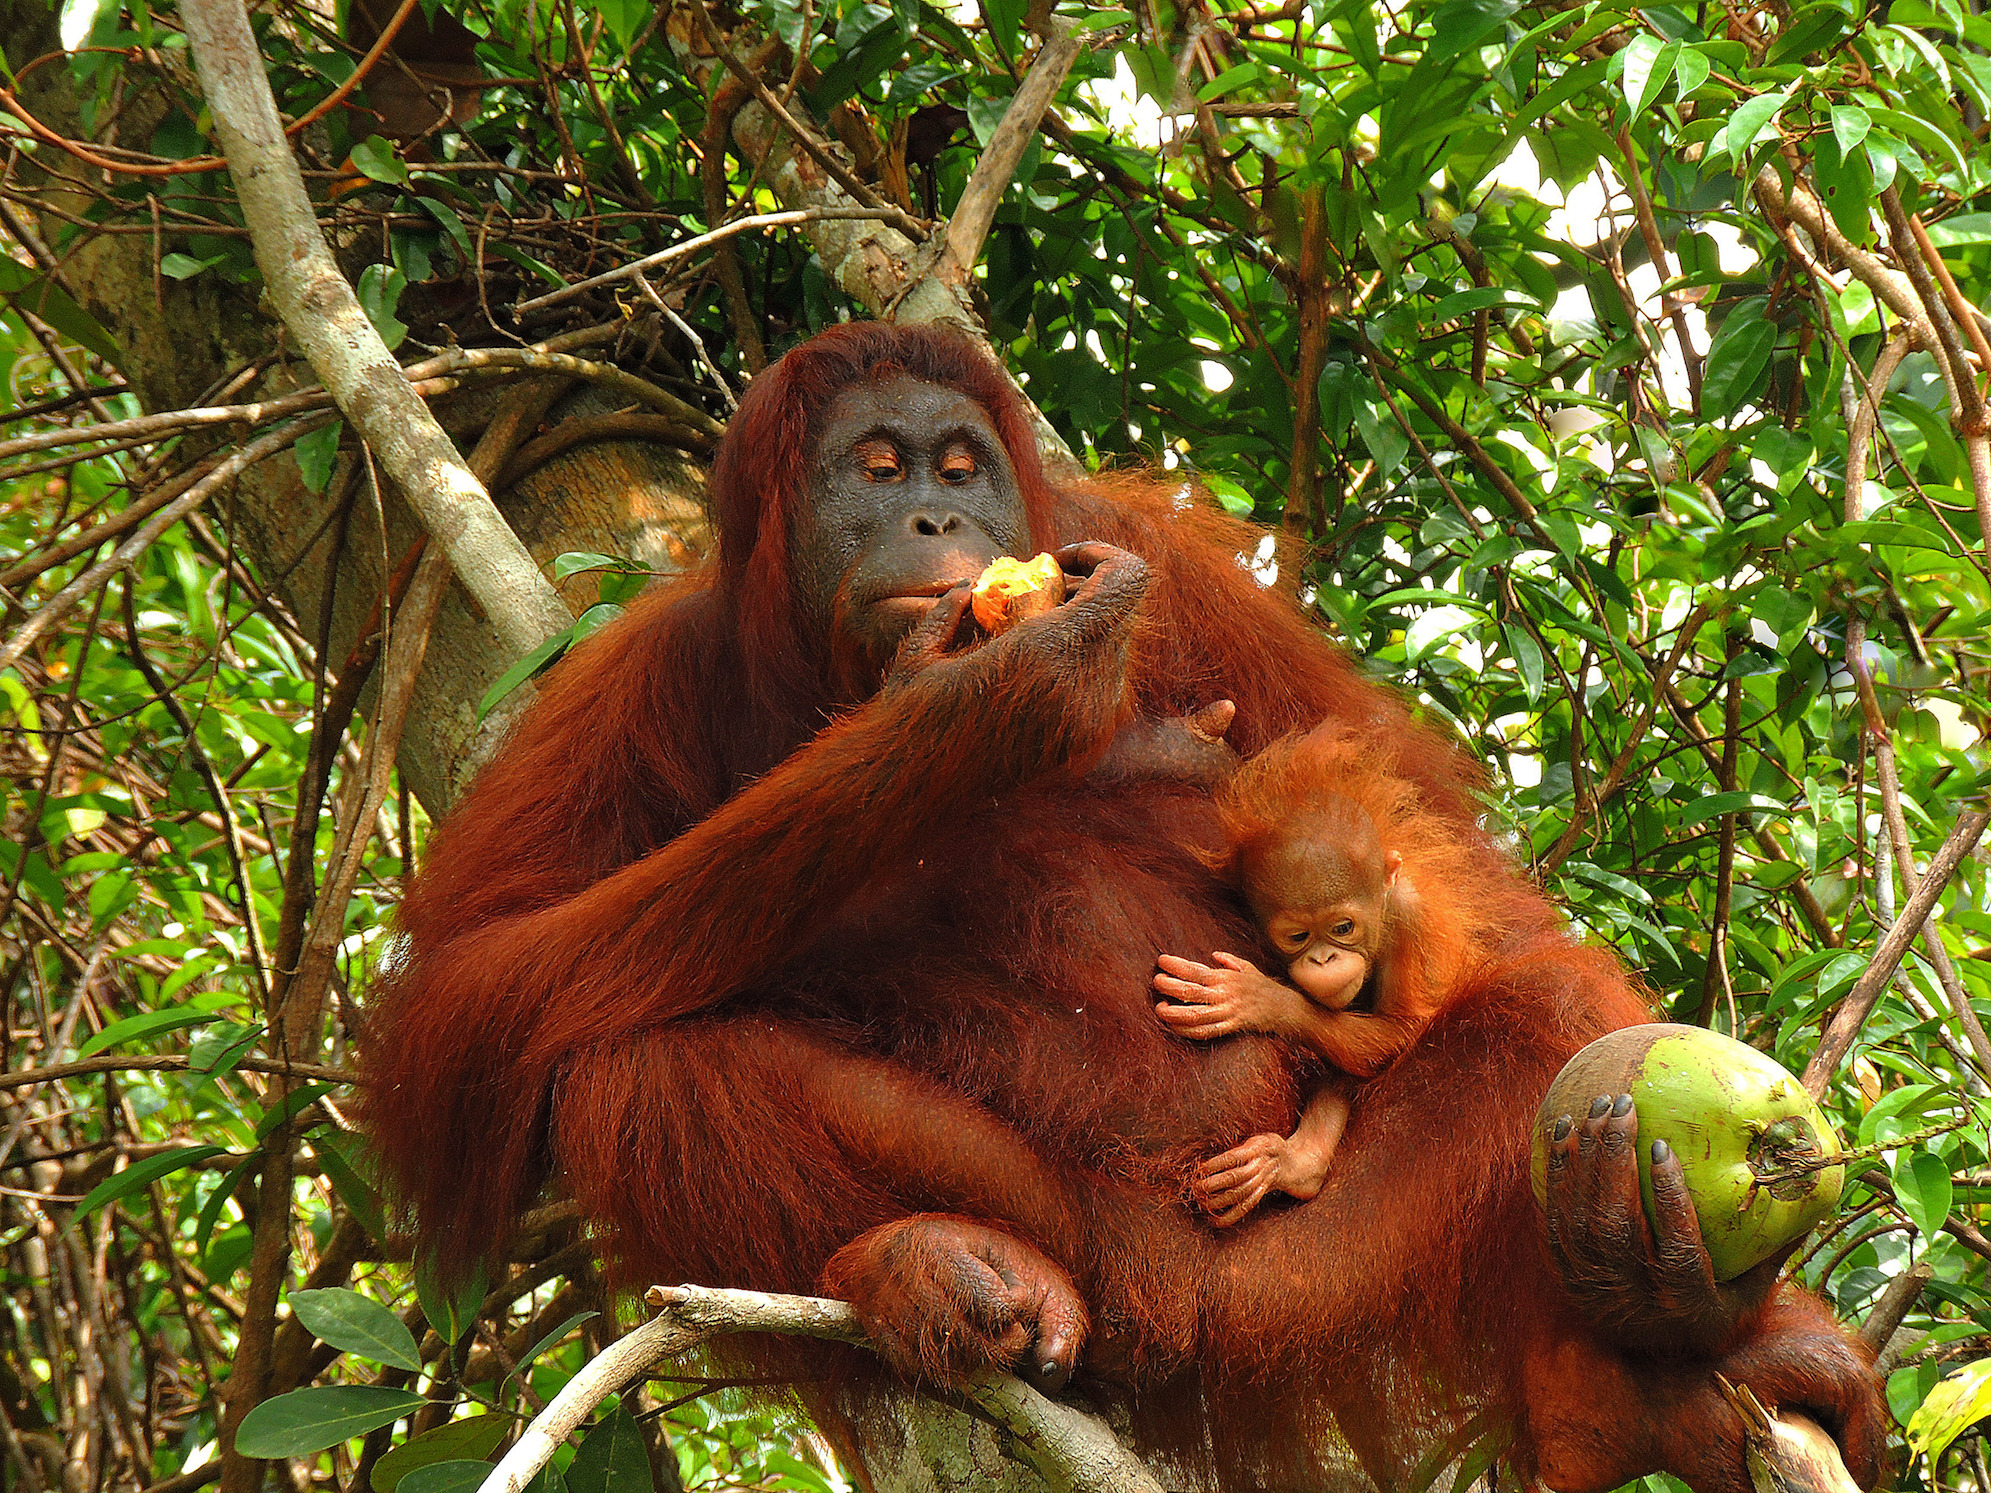 Biomarkers in the teeth of wild orangutans show how breast-feeding patterns are related to food fluctuations in their natural habitat.